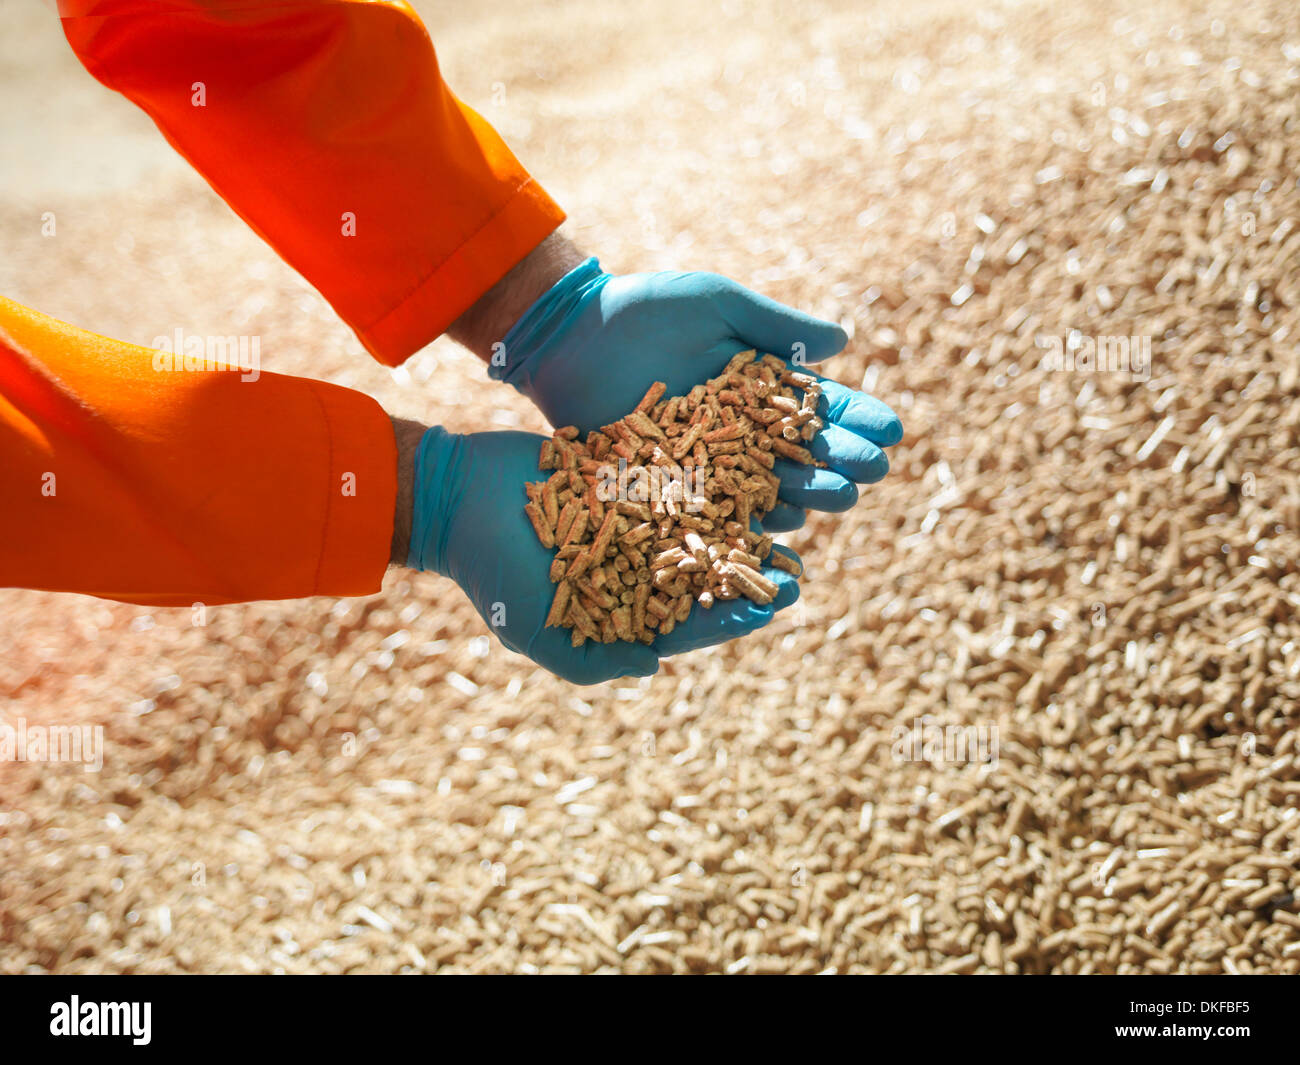 Worker holding handful of wood pellets, close up - Stock Image